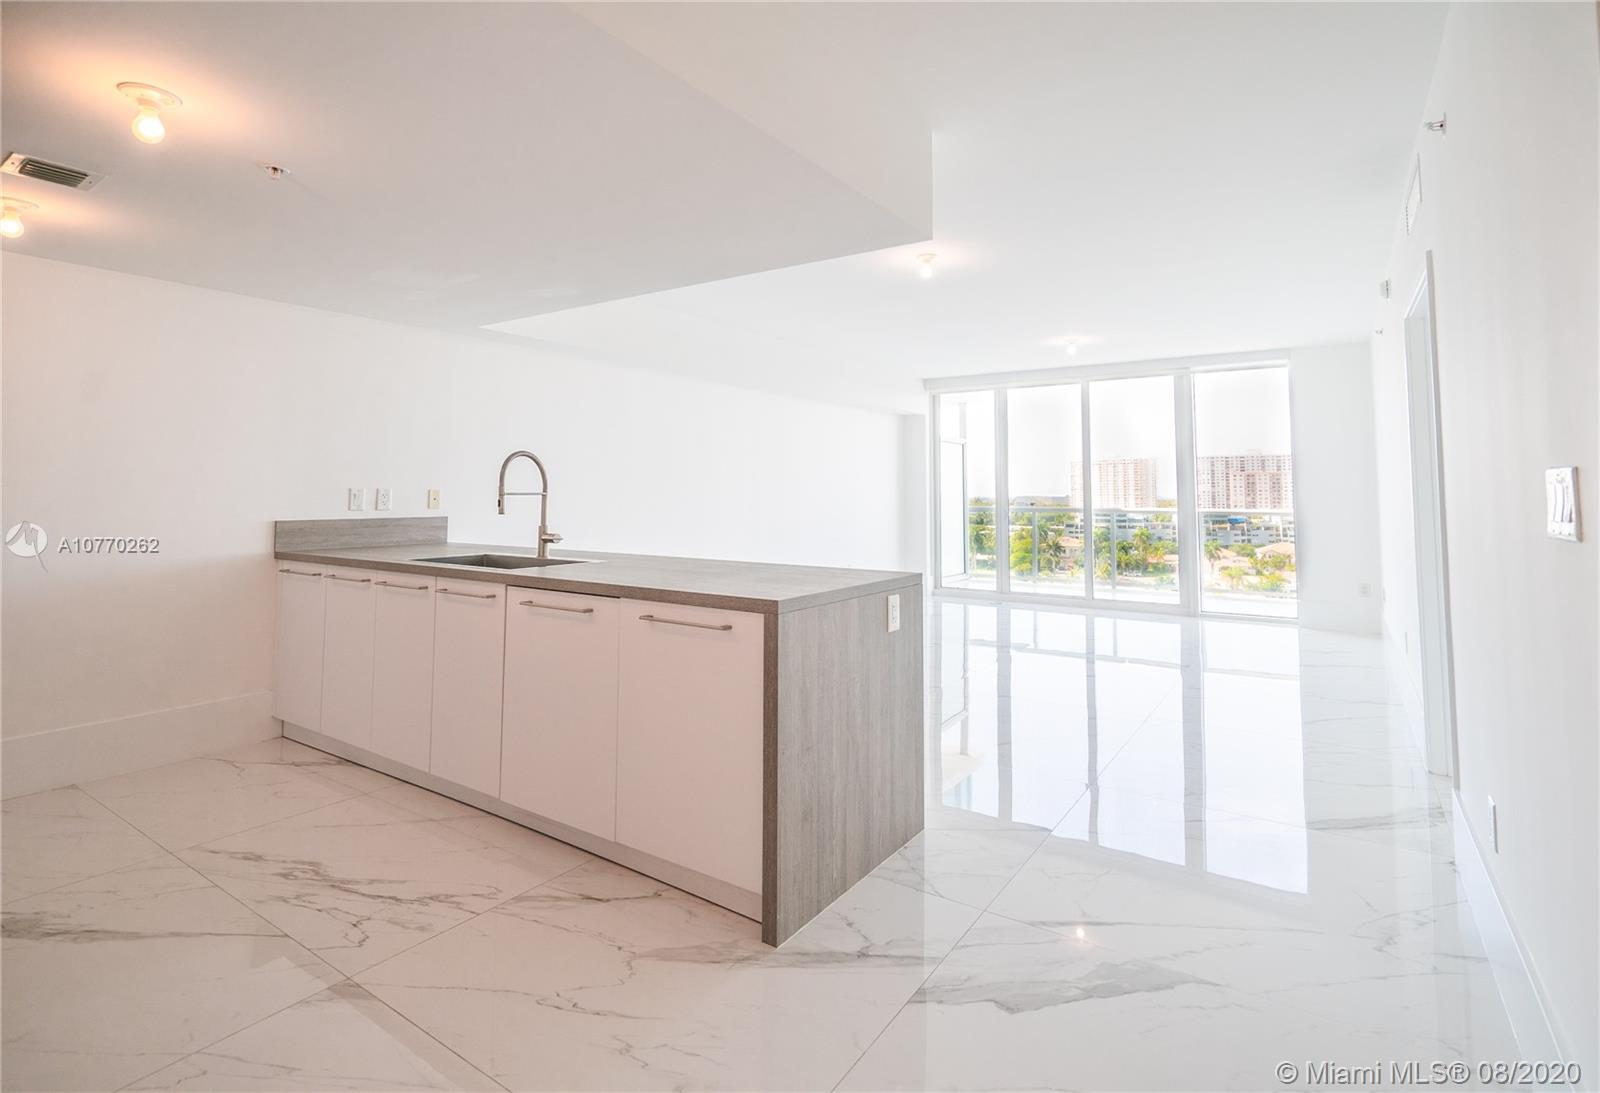 THE BEST FINISHES in one unique place!! All unit is finished with big and square 48x48 Italia Calacatta Marble floor.  THE BEST opportunity to live in this wonderful Duplex at 400 Sunny Isles, 2-story with a Den that can be convert to an office or 3rd bedroom. You can have a walking closets, European kitchen cabinets and German appliances with an Amazing and stunning water view of the Ocean, bay and National Park. 400 Sunny Isles Building is consider a resort with diverse amenities that include spa, pool, Jacuzzi, fitness center, tennis court, beach service, private marine and much more. Come live with style!